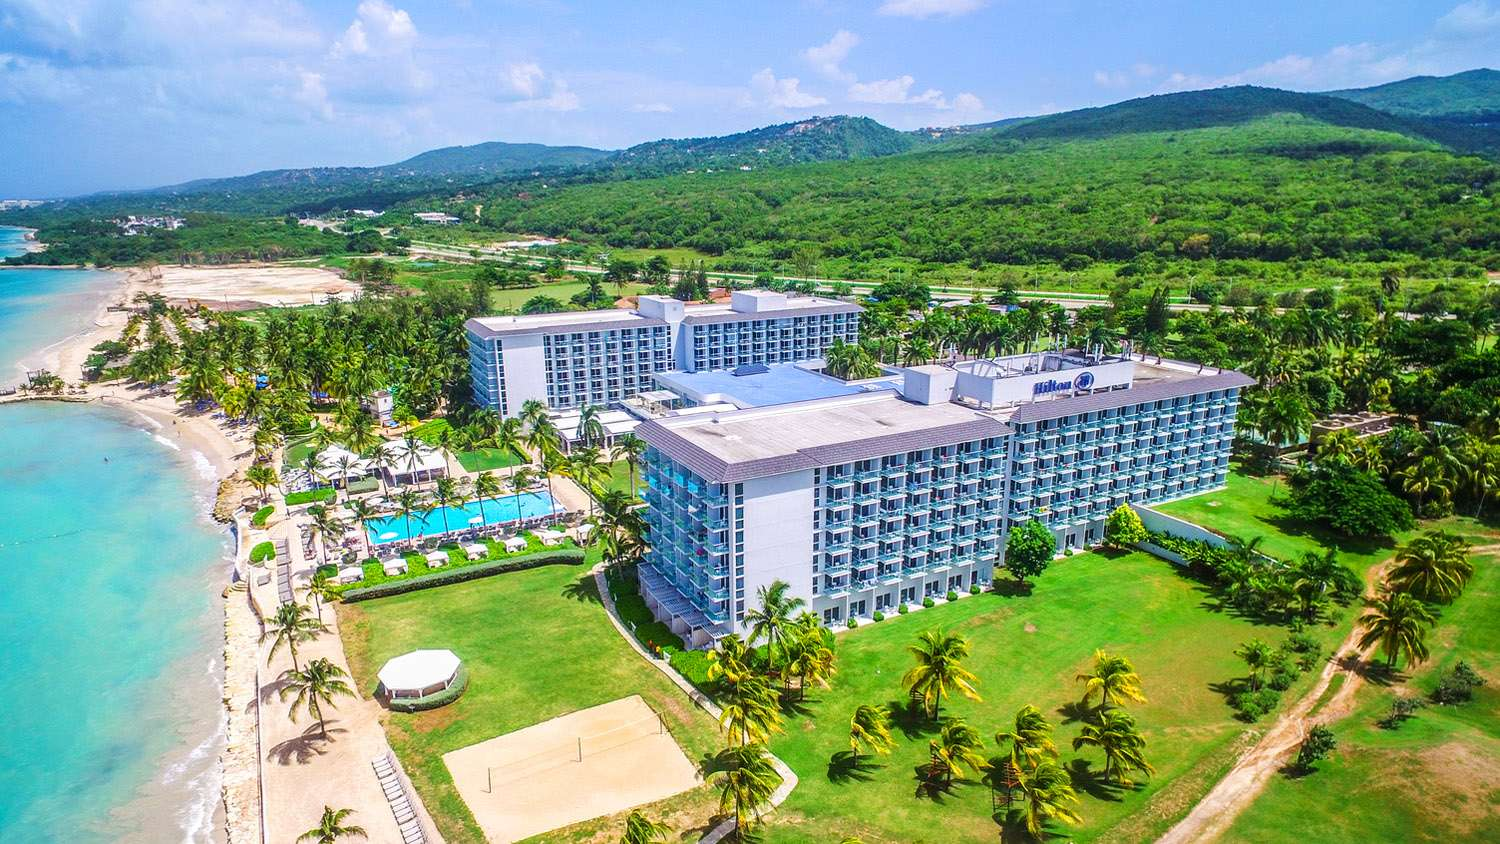 Hilton Rose Hall Resort & Spa, Saint James, Jamaica